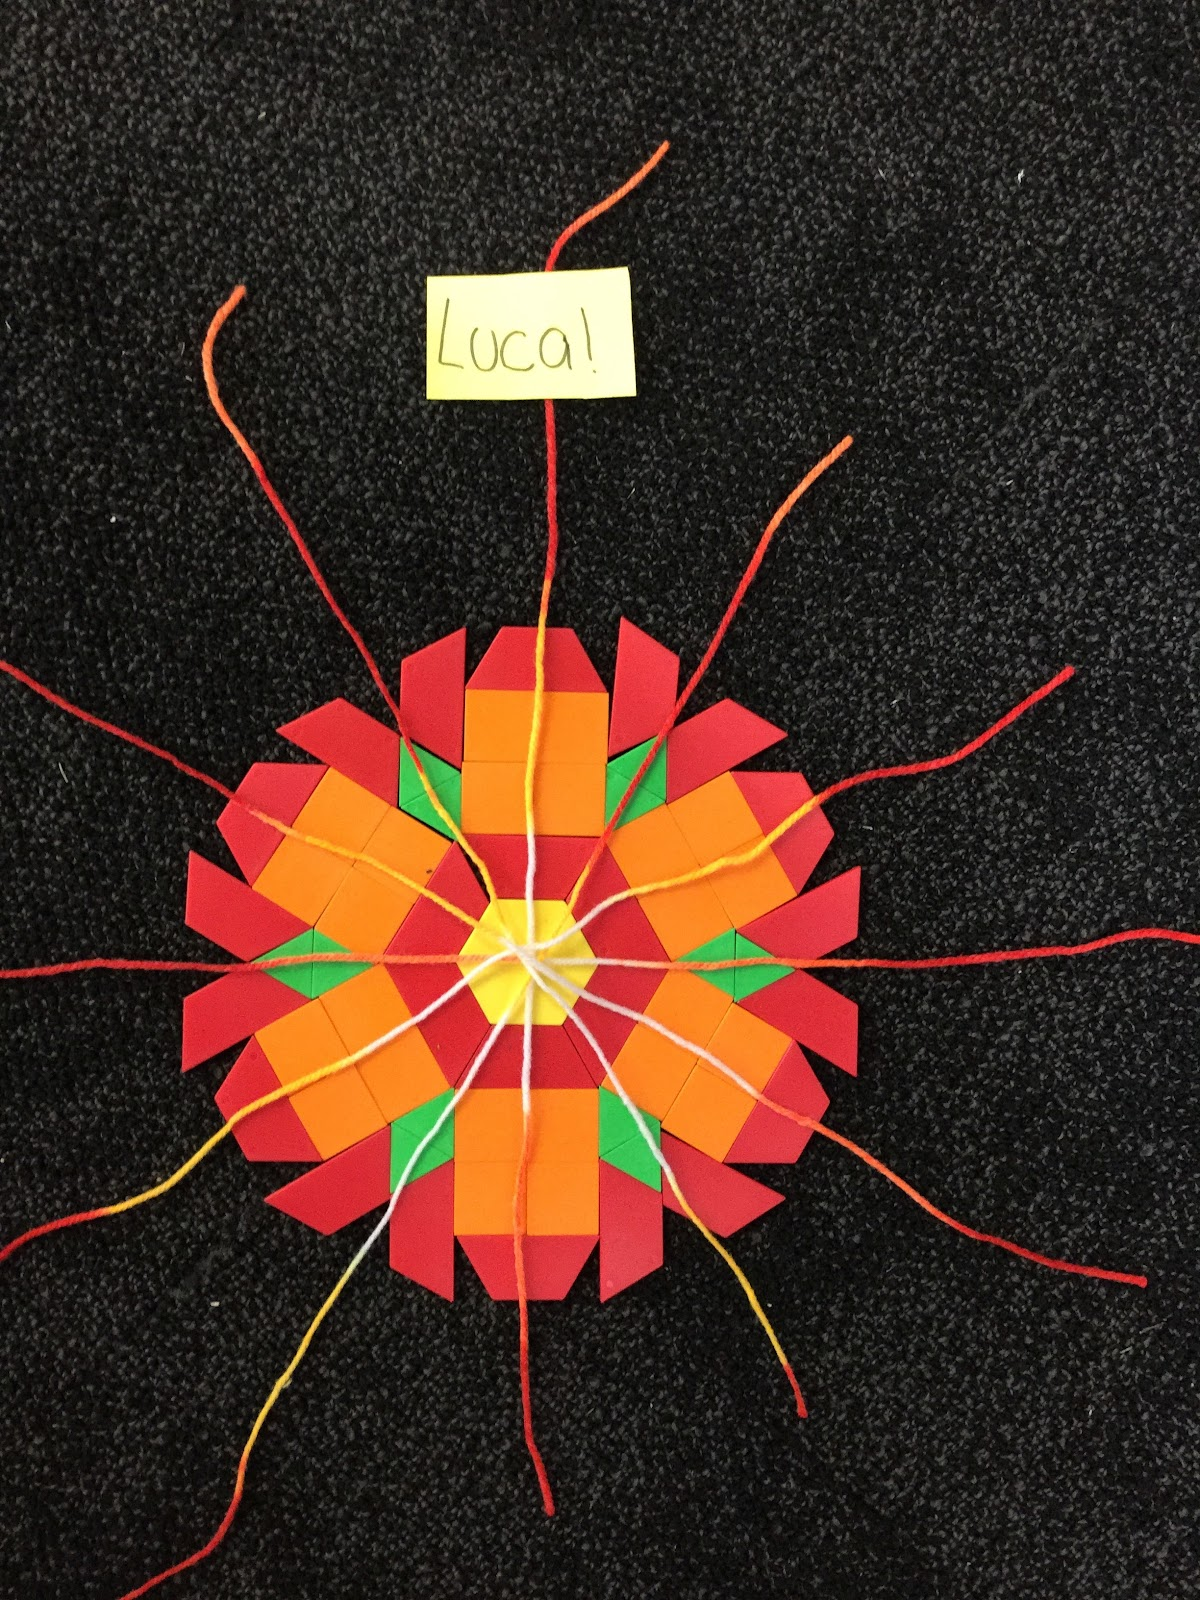 Year 3 4 Middle Learning Community Year 4 Maths Symmetry